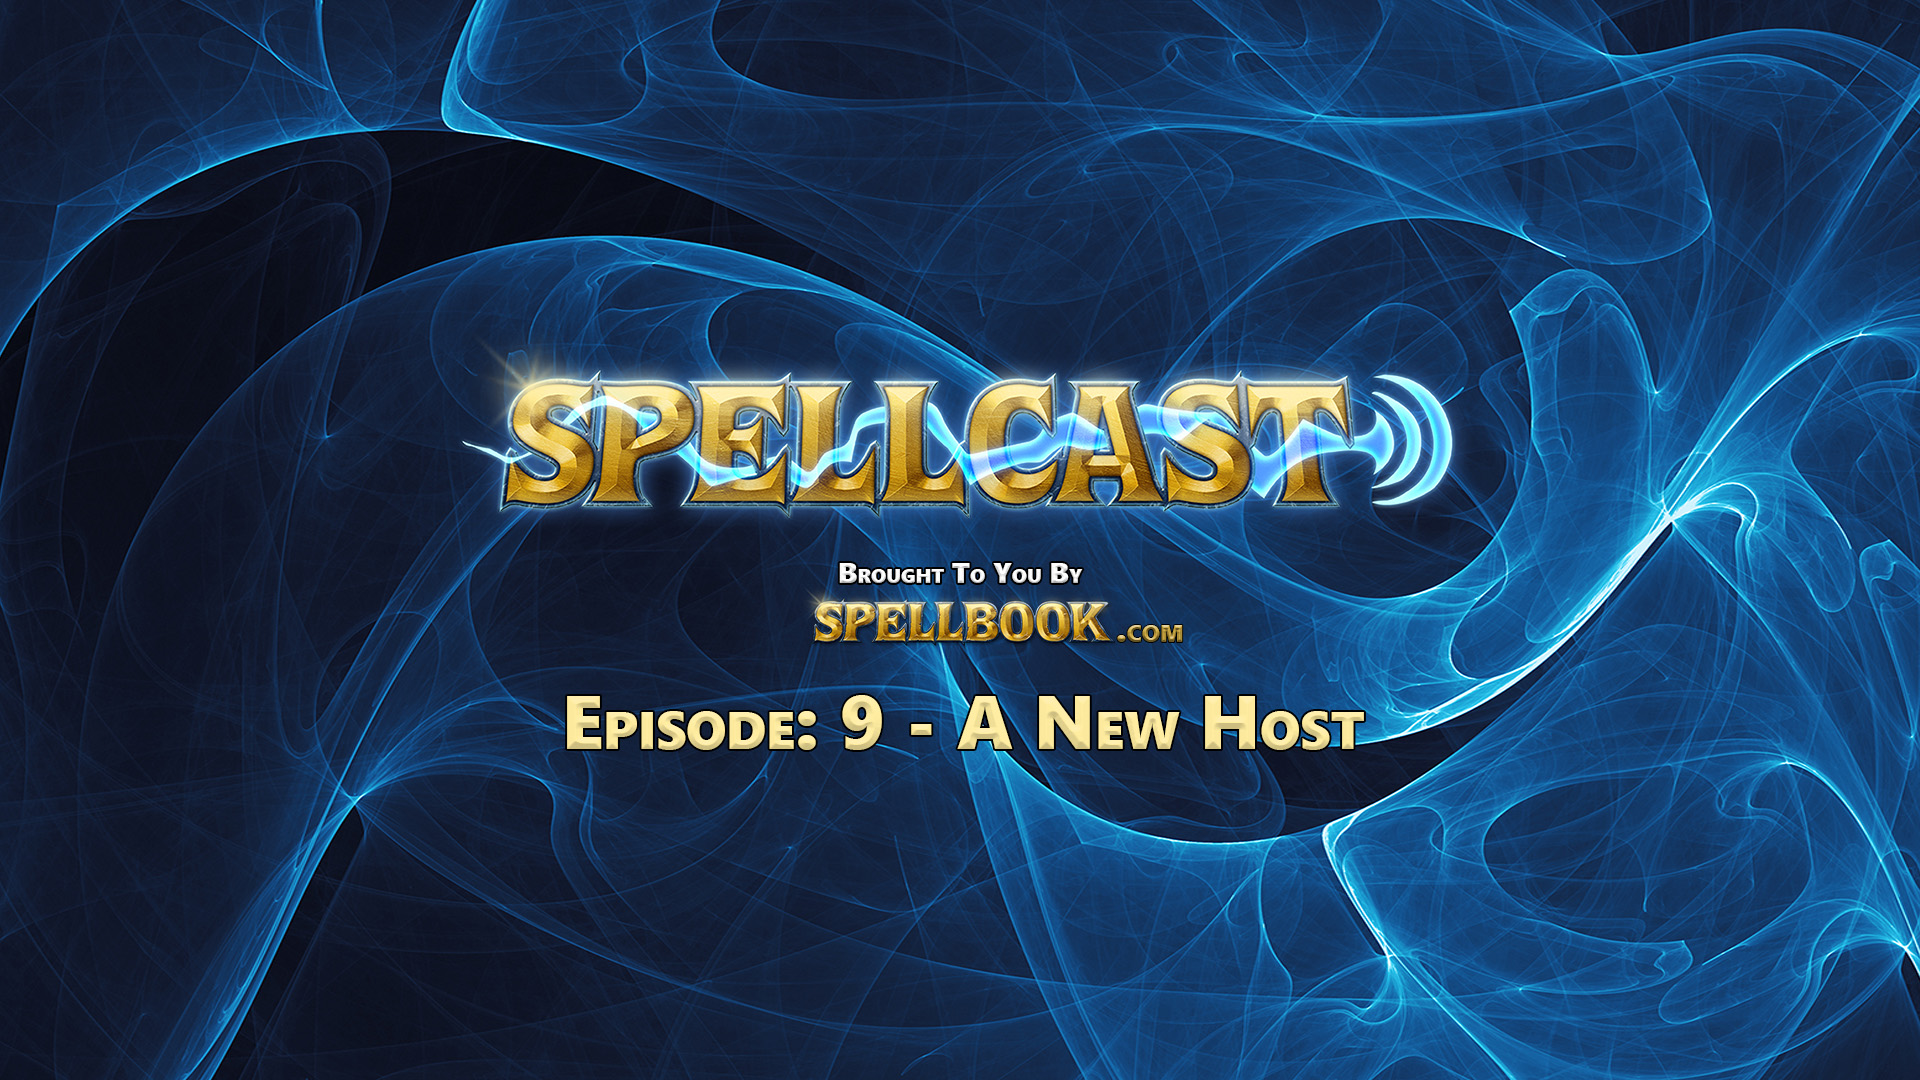 Spellcast Episode: 9 - A New Host